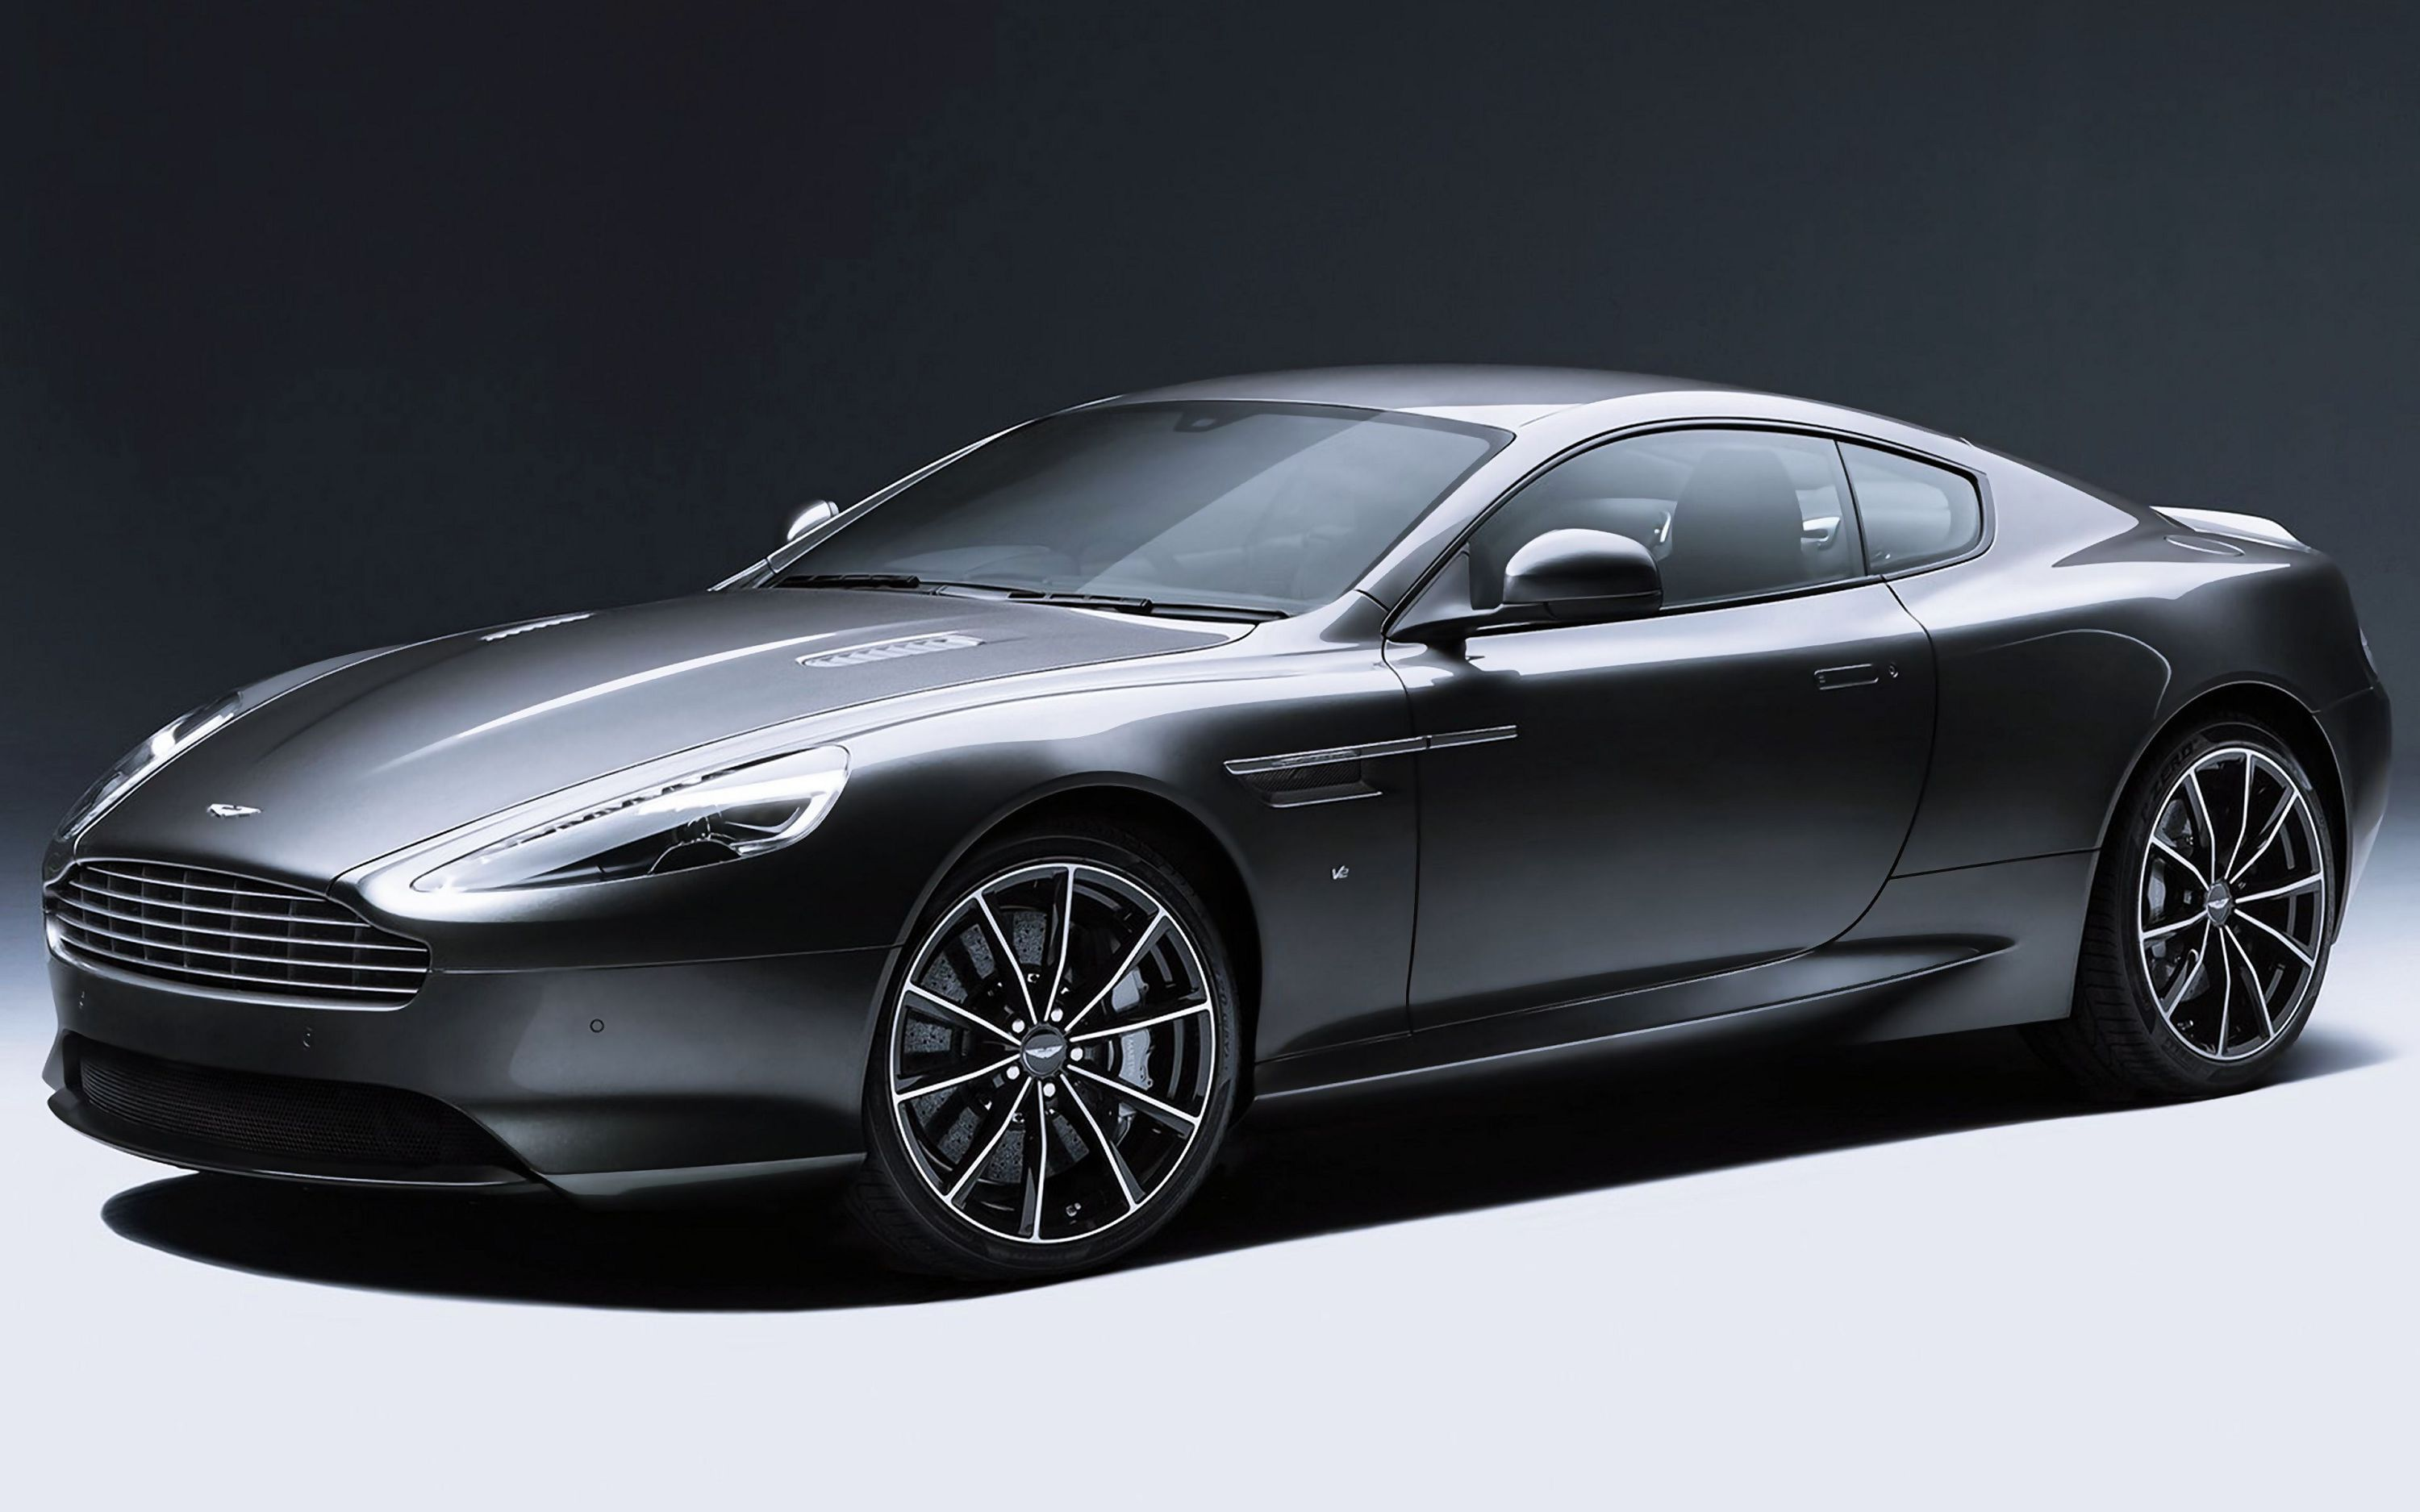 Aston Martin Db9 Wallpaper For Laptop